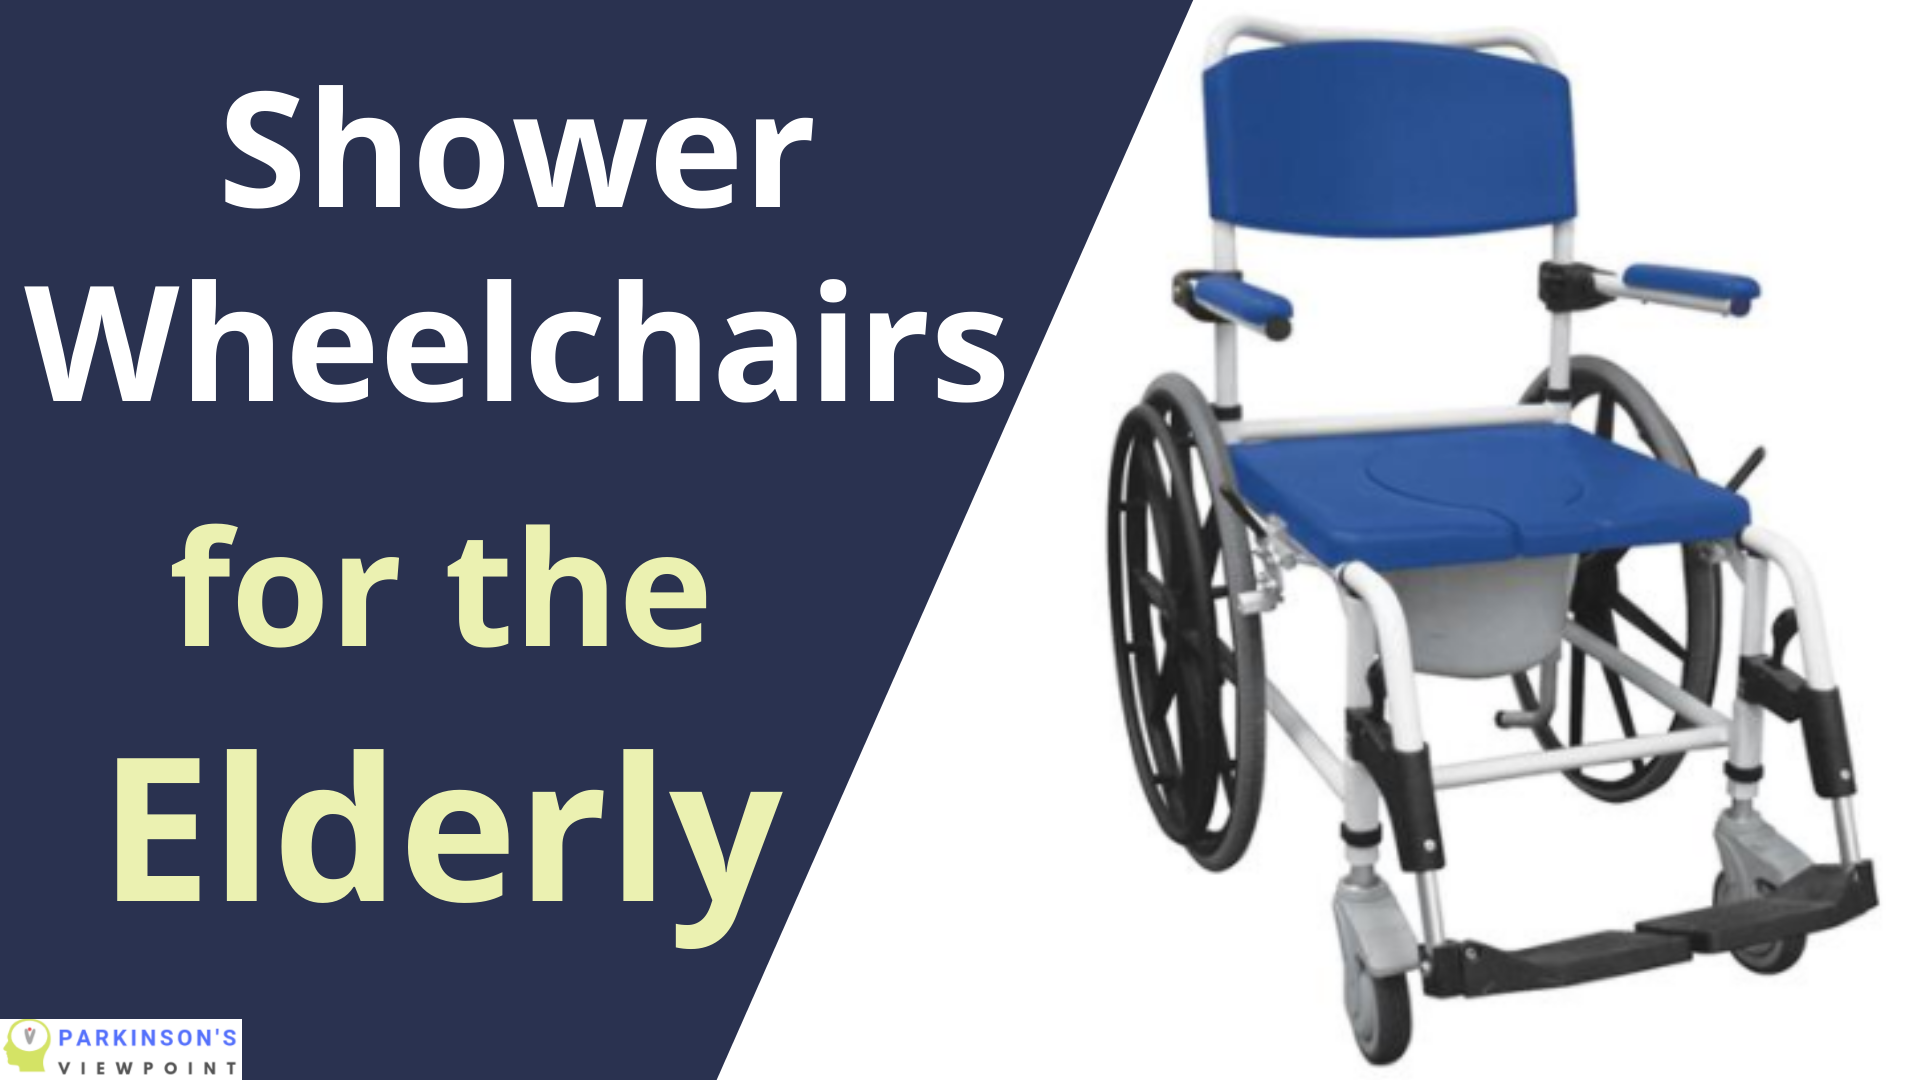 shower wheelchairs for the elderly